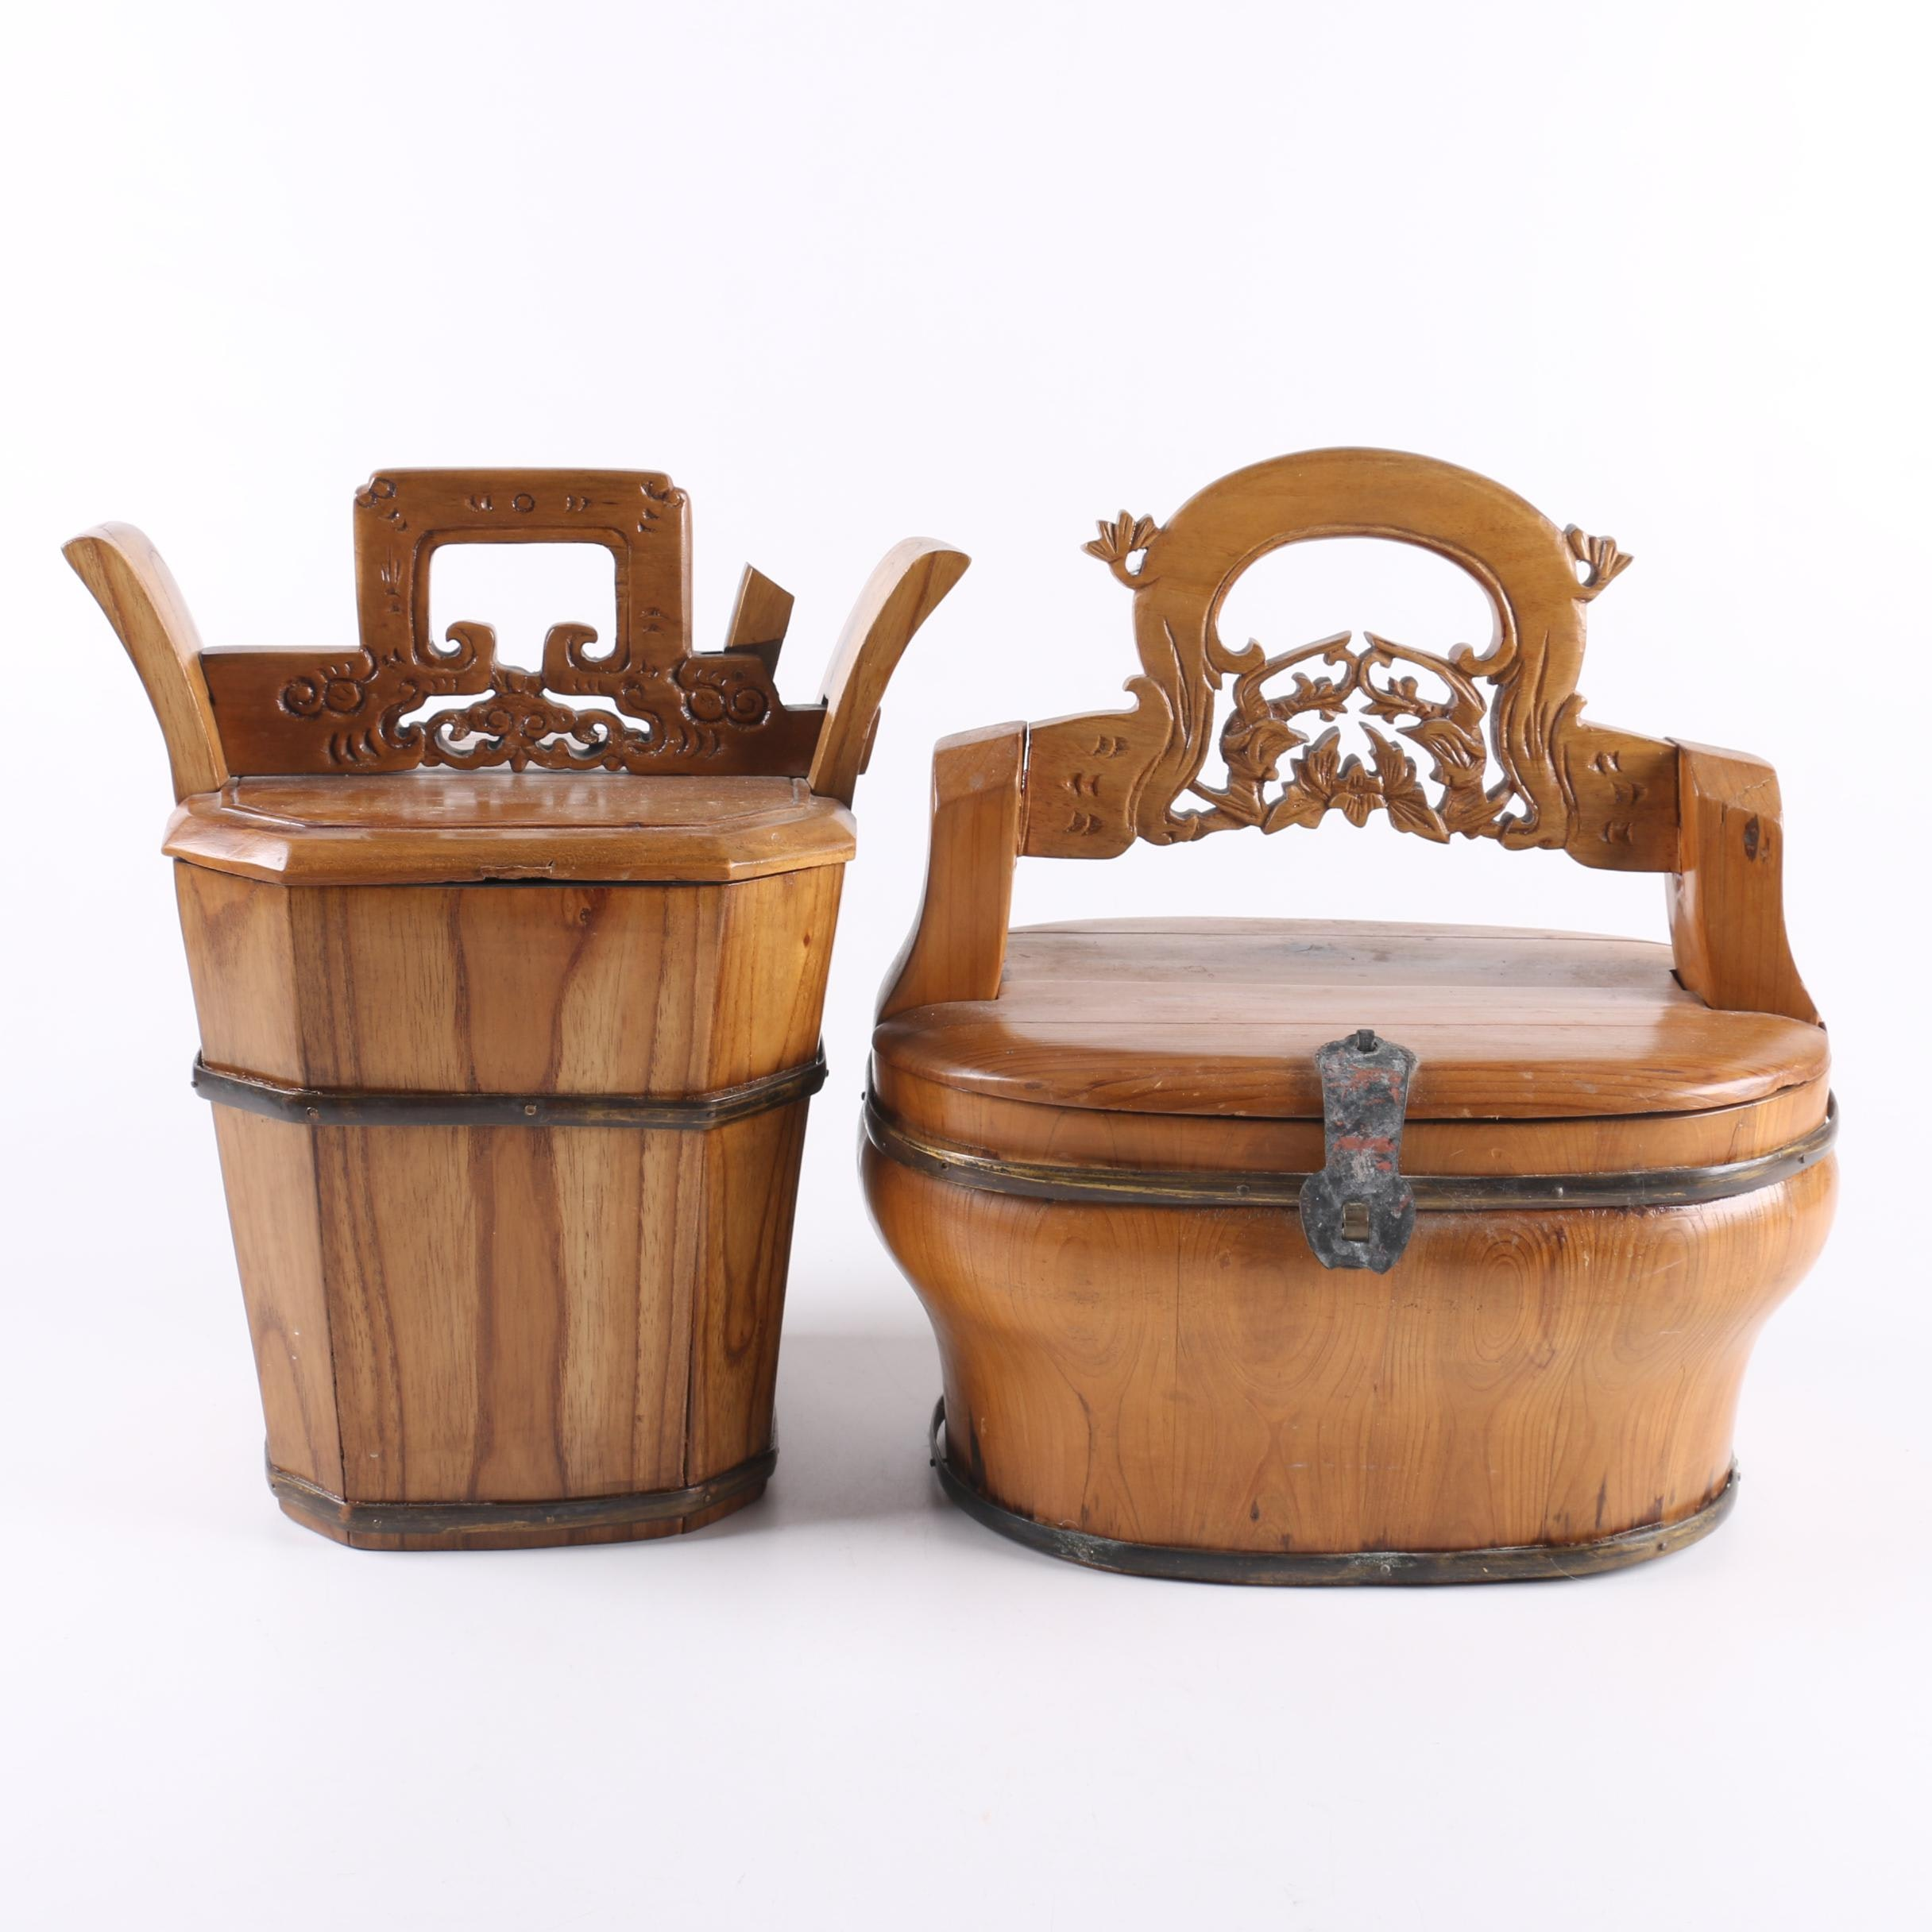 Vintage Carved Chinese Lunch Box Baskets